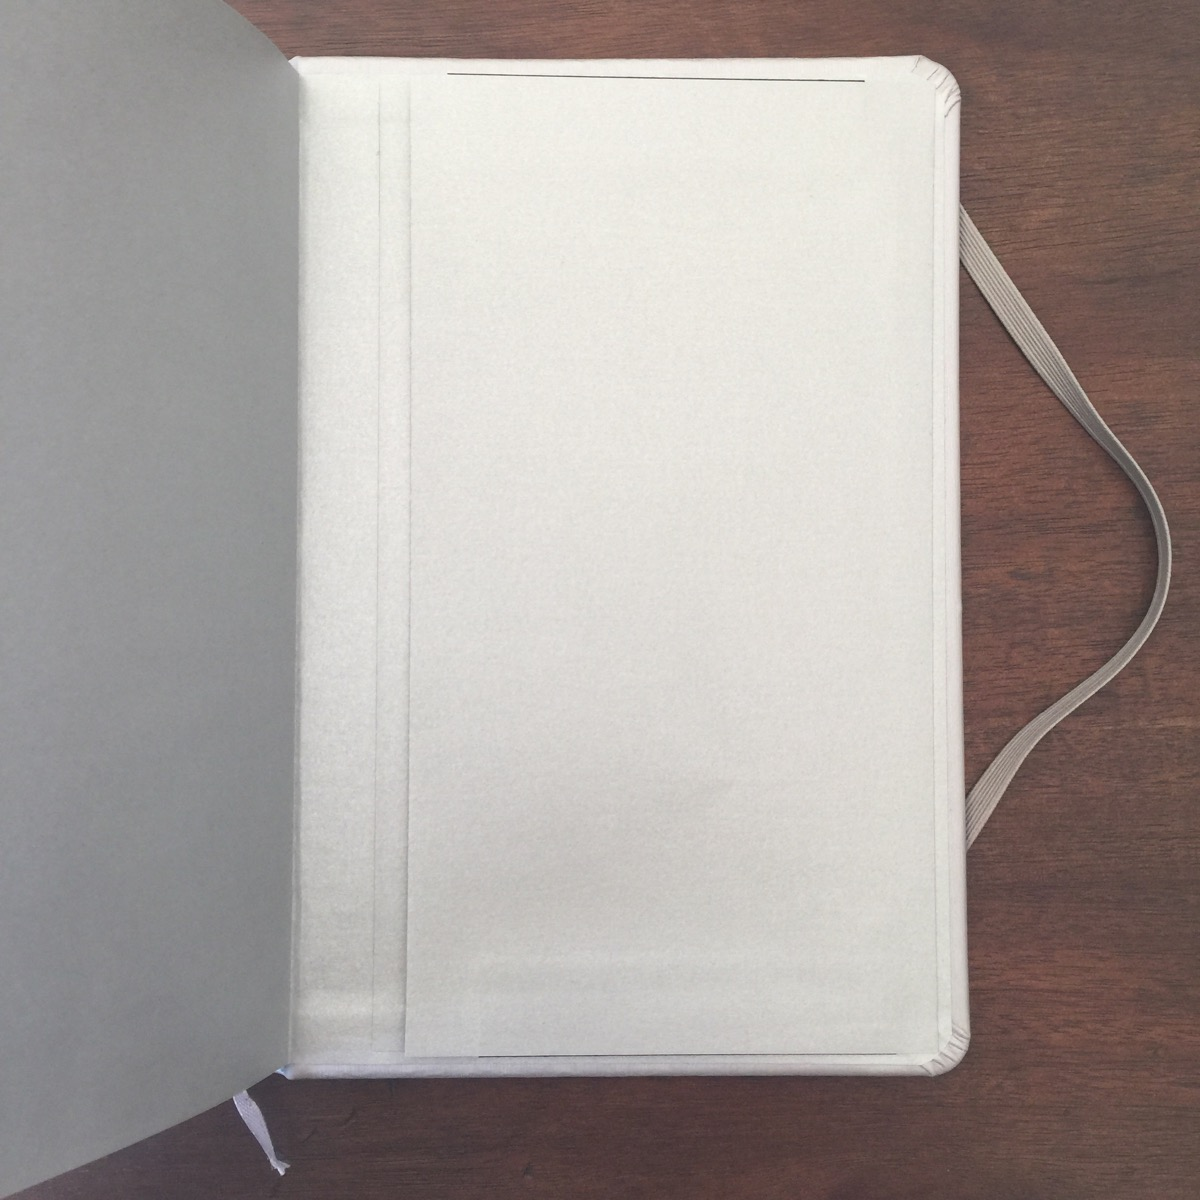 paper review  out a doubt this is a high quality item it is well made and feels luxurious the notebook features all of the bells and whistles hard cover